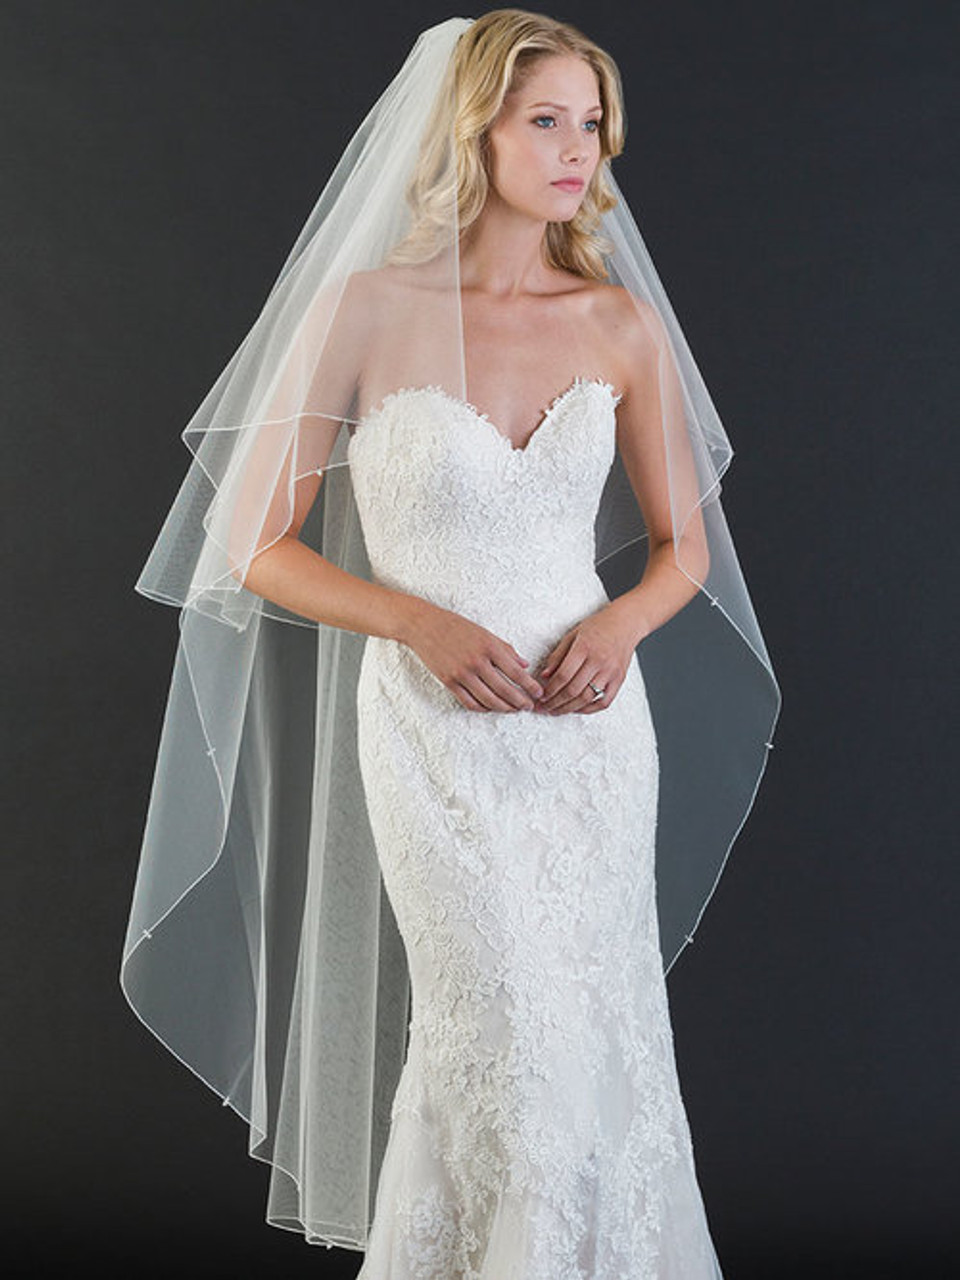 Bel Aire Bridal Veil V7458 Foldover waltz length veil with rolled edge, crystals and rhinestones